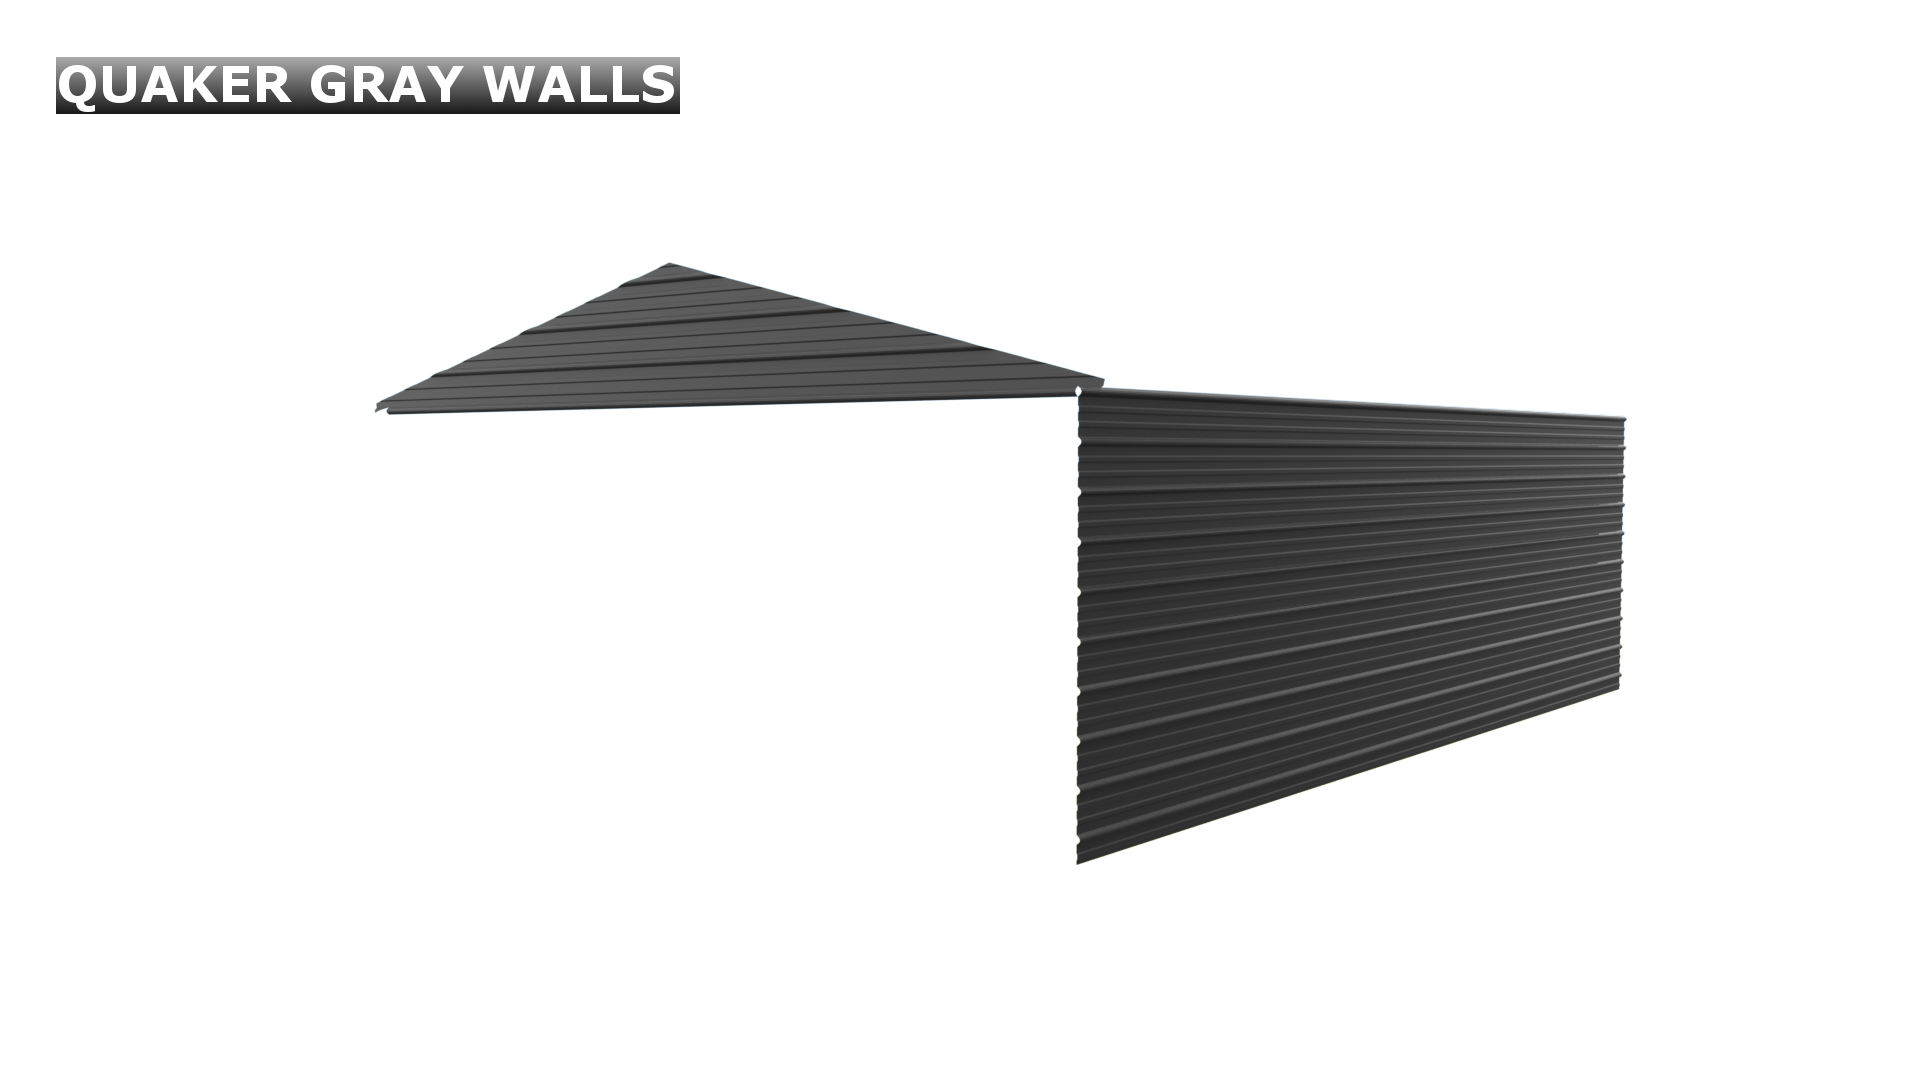 QUAKER GRAY WALLS